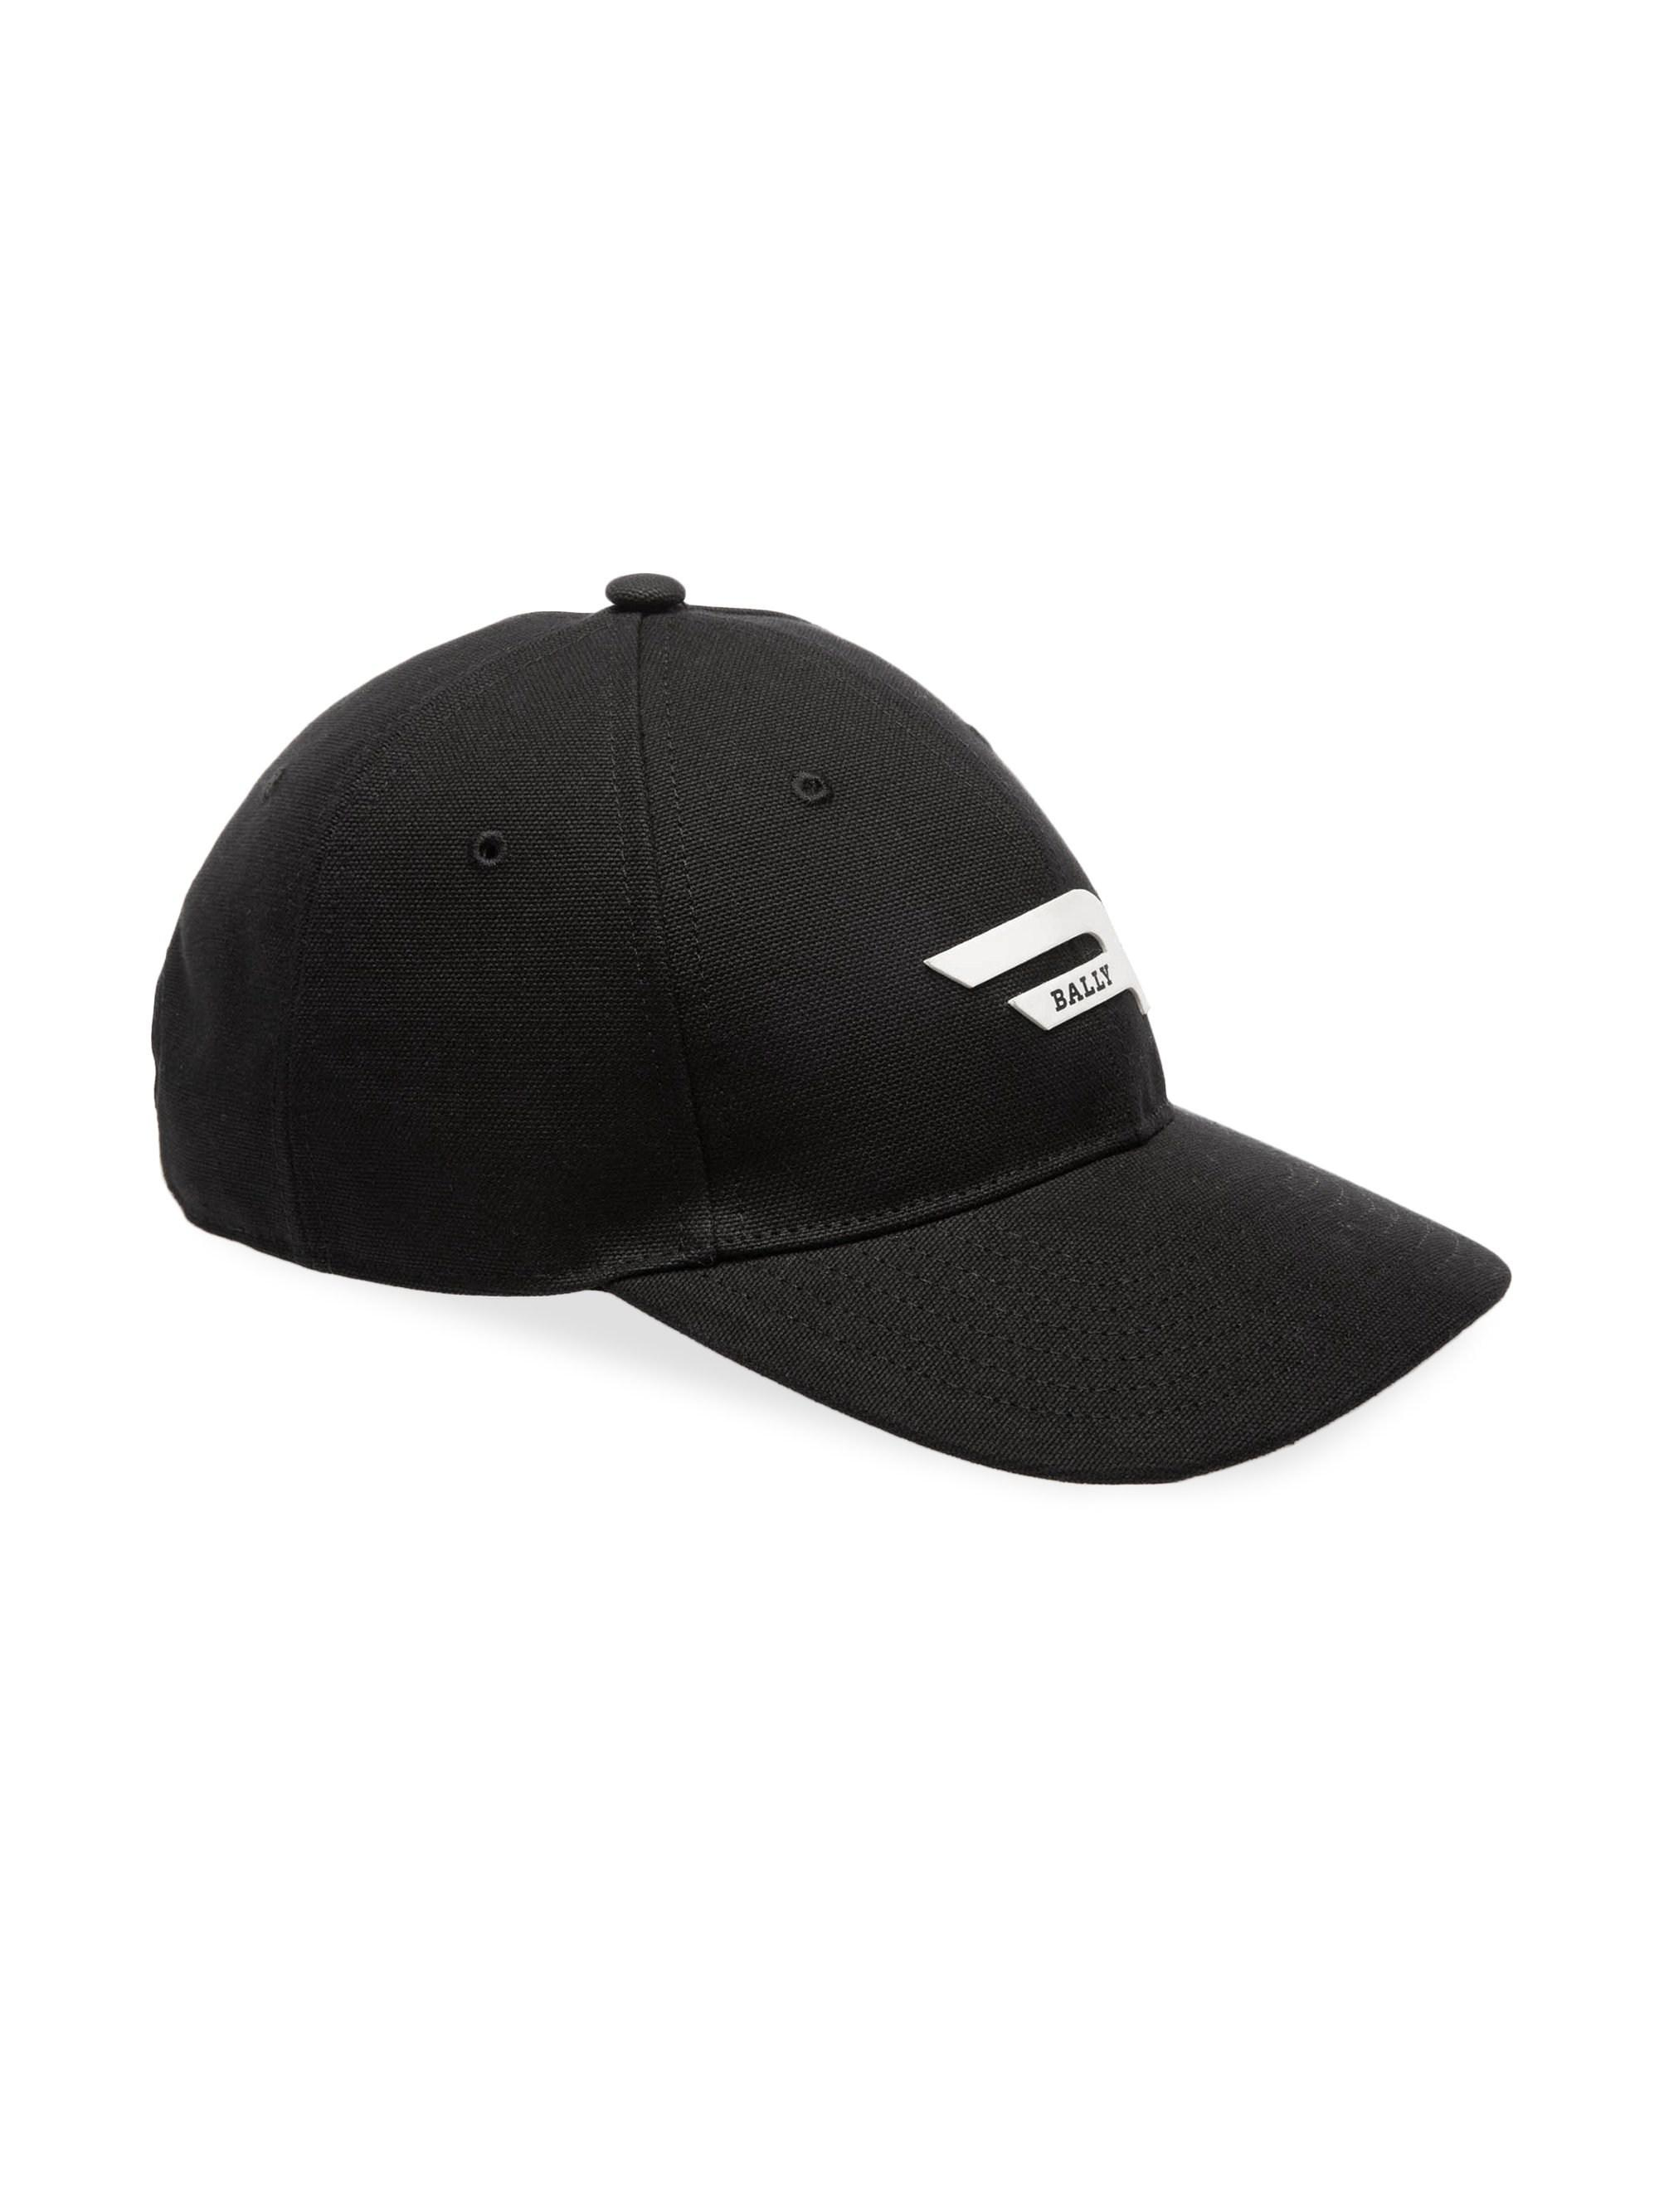 Bally Drill Competition Logo Baseball Cap in Black for Men - Lyst ca25fd3d2f37